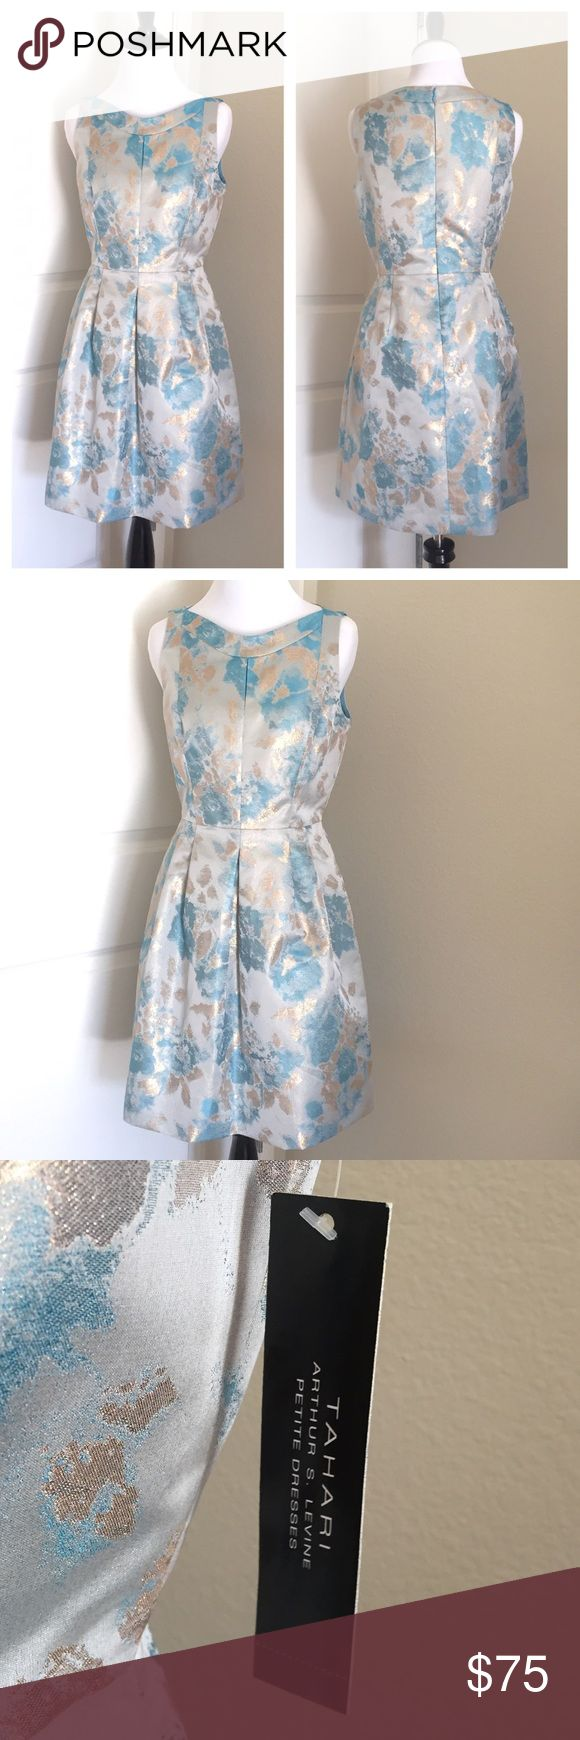 "NWT Tahari Sky Blue/ Gold  Petite Dress Brand new with tags. Such a pretty dress for spring! This floral jacquard dress by Tahari features a fit and flare silhouette; rounded neckline; side hand pockets; straight hemline; back zipper closure that extends three fourths of the way down the back for easy wearability; comes fully lined. Material: 83% Polyester, 17% metallic; lining: 100% polyester. Size: 4P. Dry clean only. Length: Approx. 34"". Price is Firm🌷 Tahari Dresses"